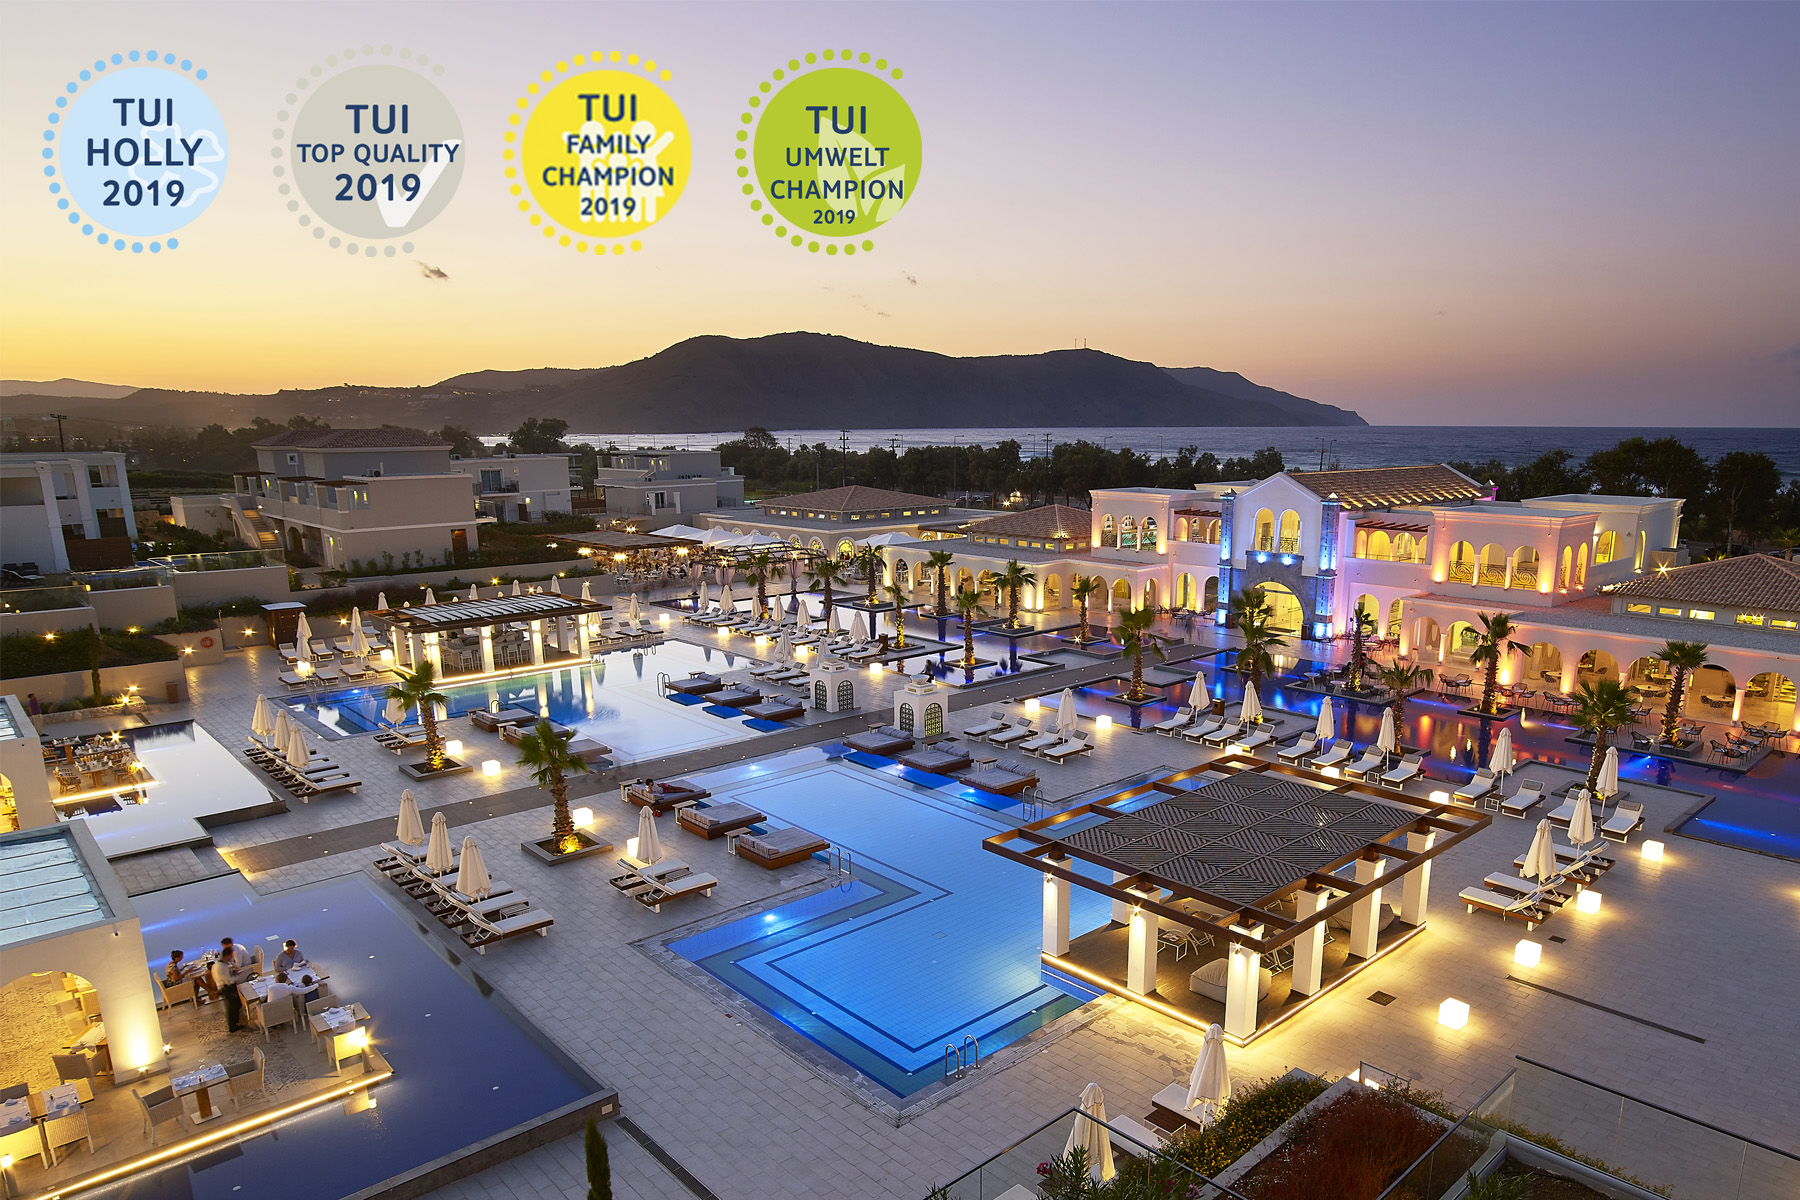 The Anemos Luxury Grand Resort Is The Highly Prized Hotel Of TUI.